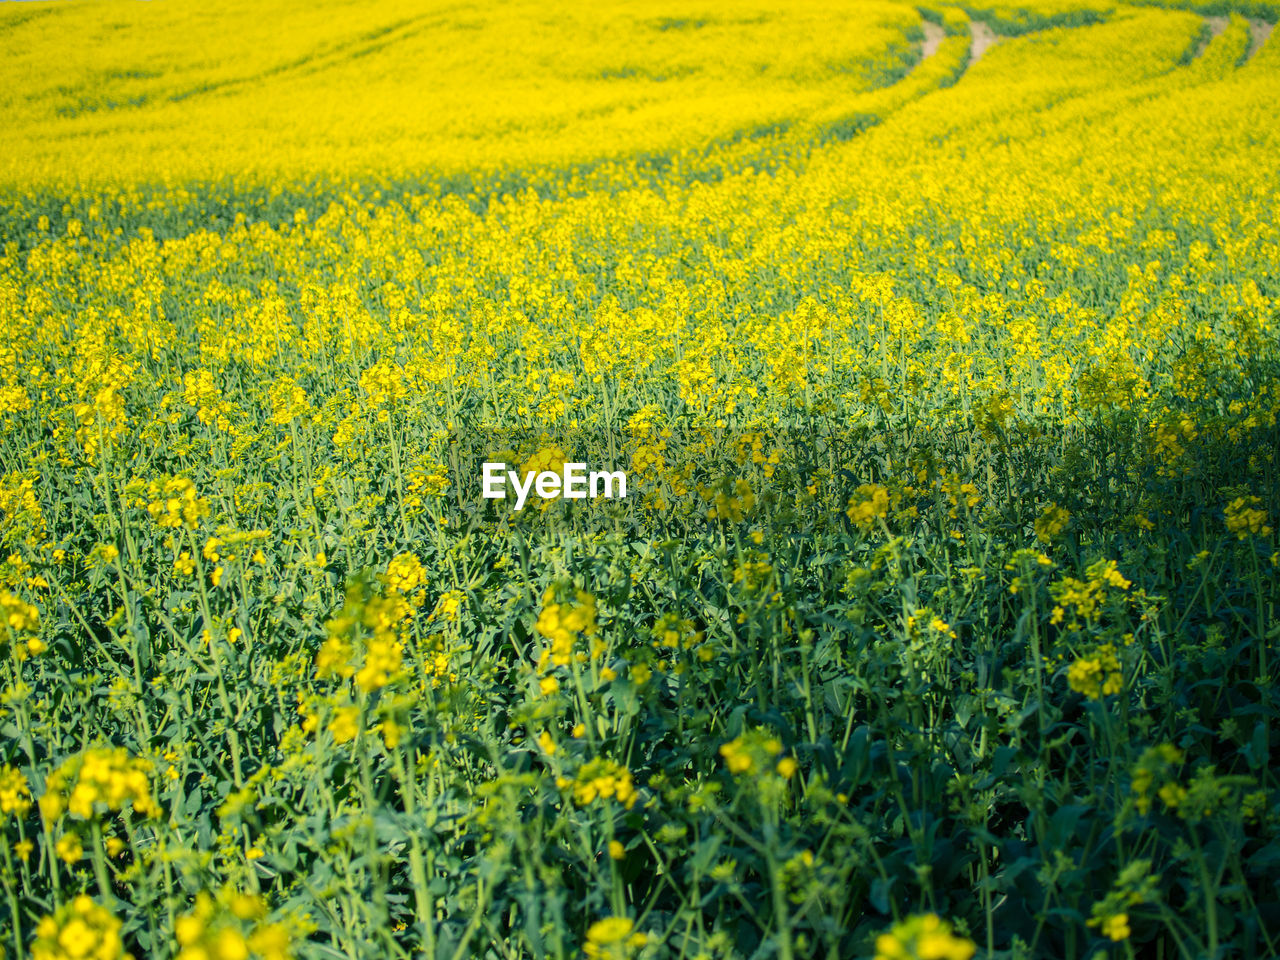 yellow, flower, oilseed rape, crop, field, agriculture, nature, farm, beauty in nature, rural scene, mustard plant, cultivated land, tranquil scene, growth, springtime, no people, landscape, tranquility, cultivated, day, plant, backgrounds, scenics, fragility, outdoors, freshness